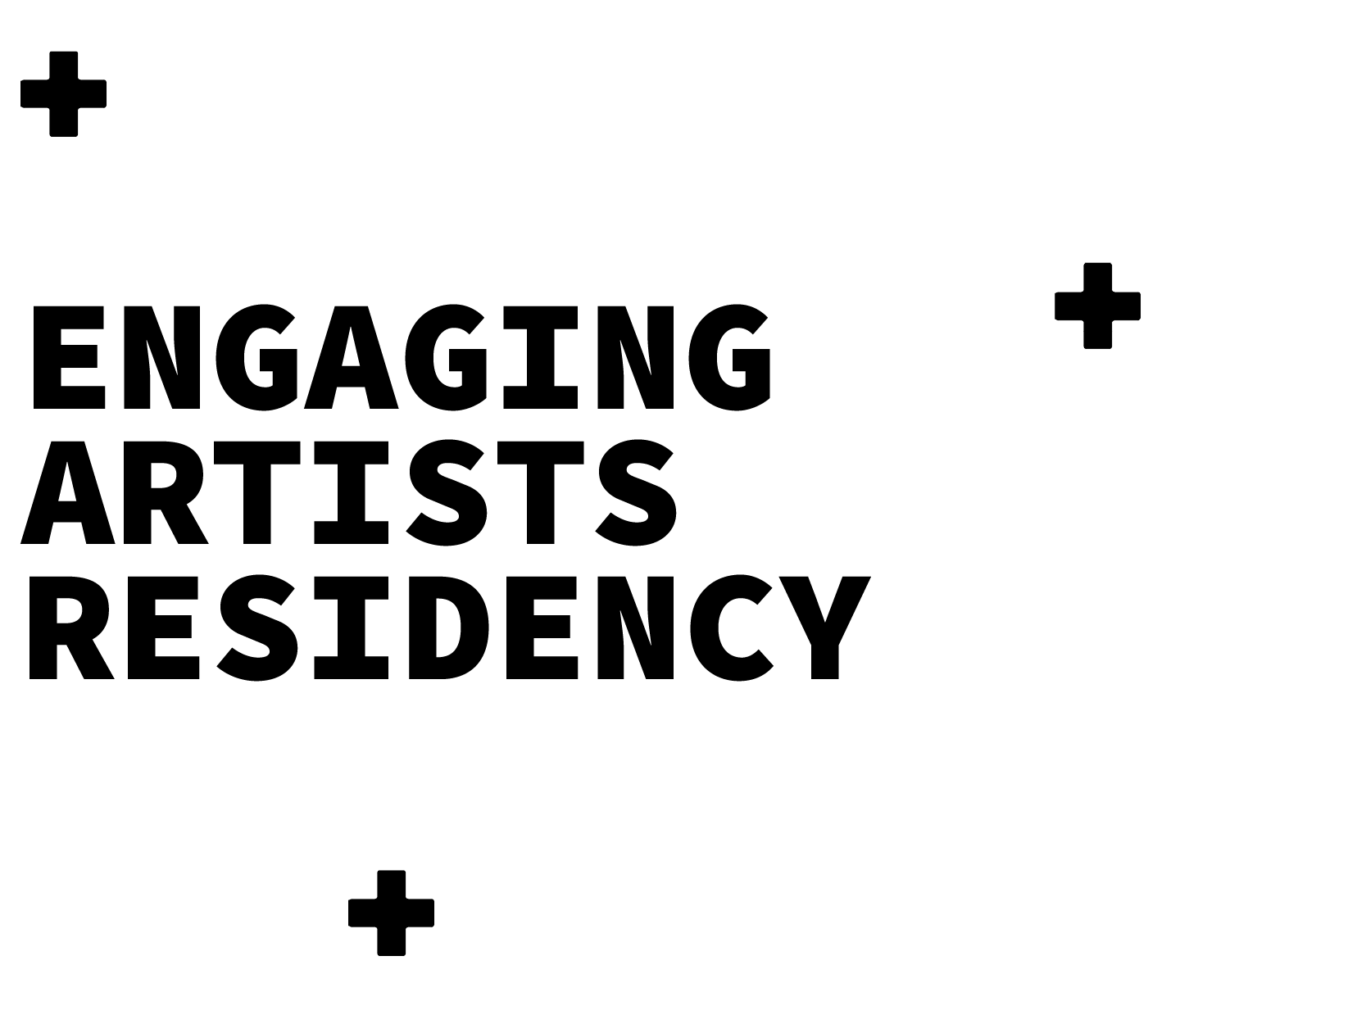 Engaging Artists Residency title text